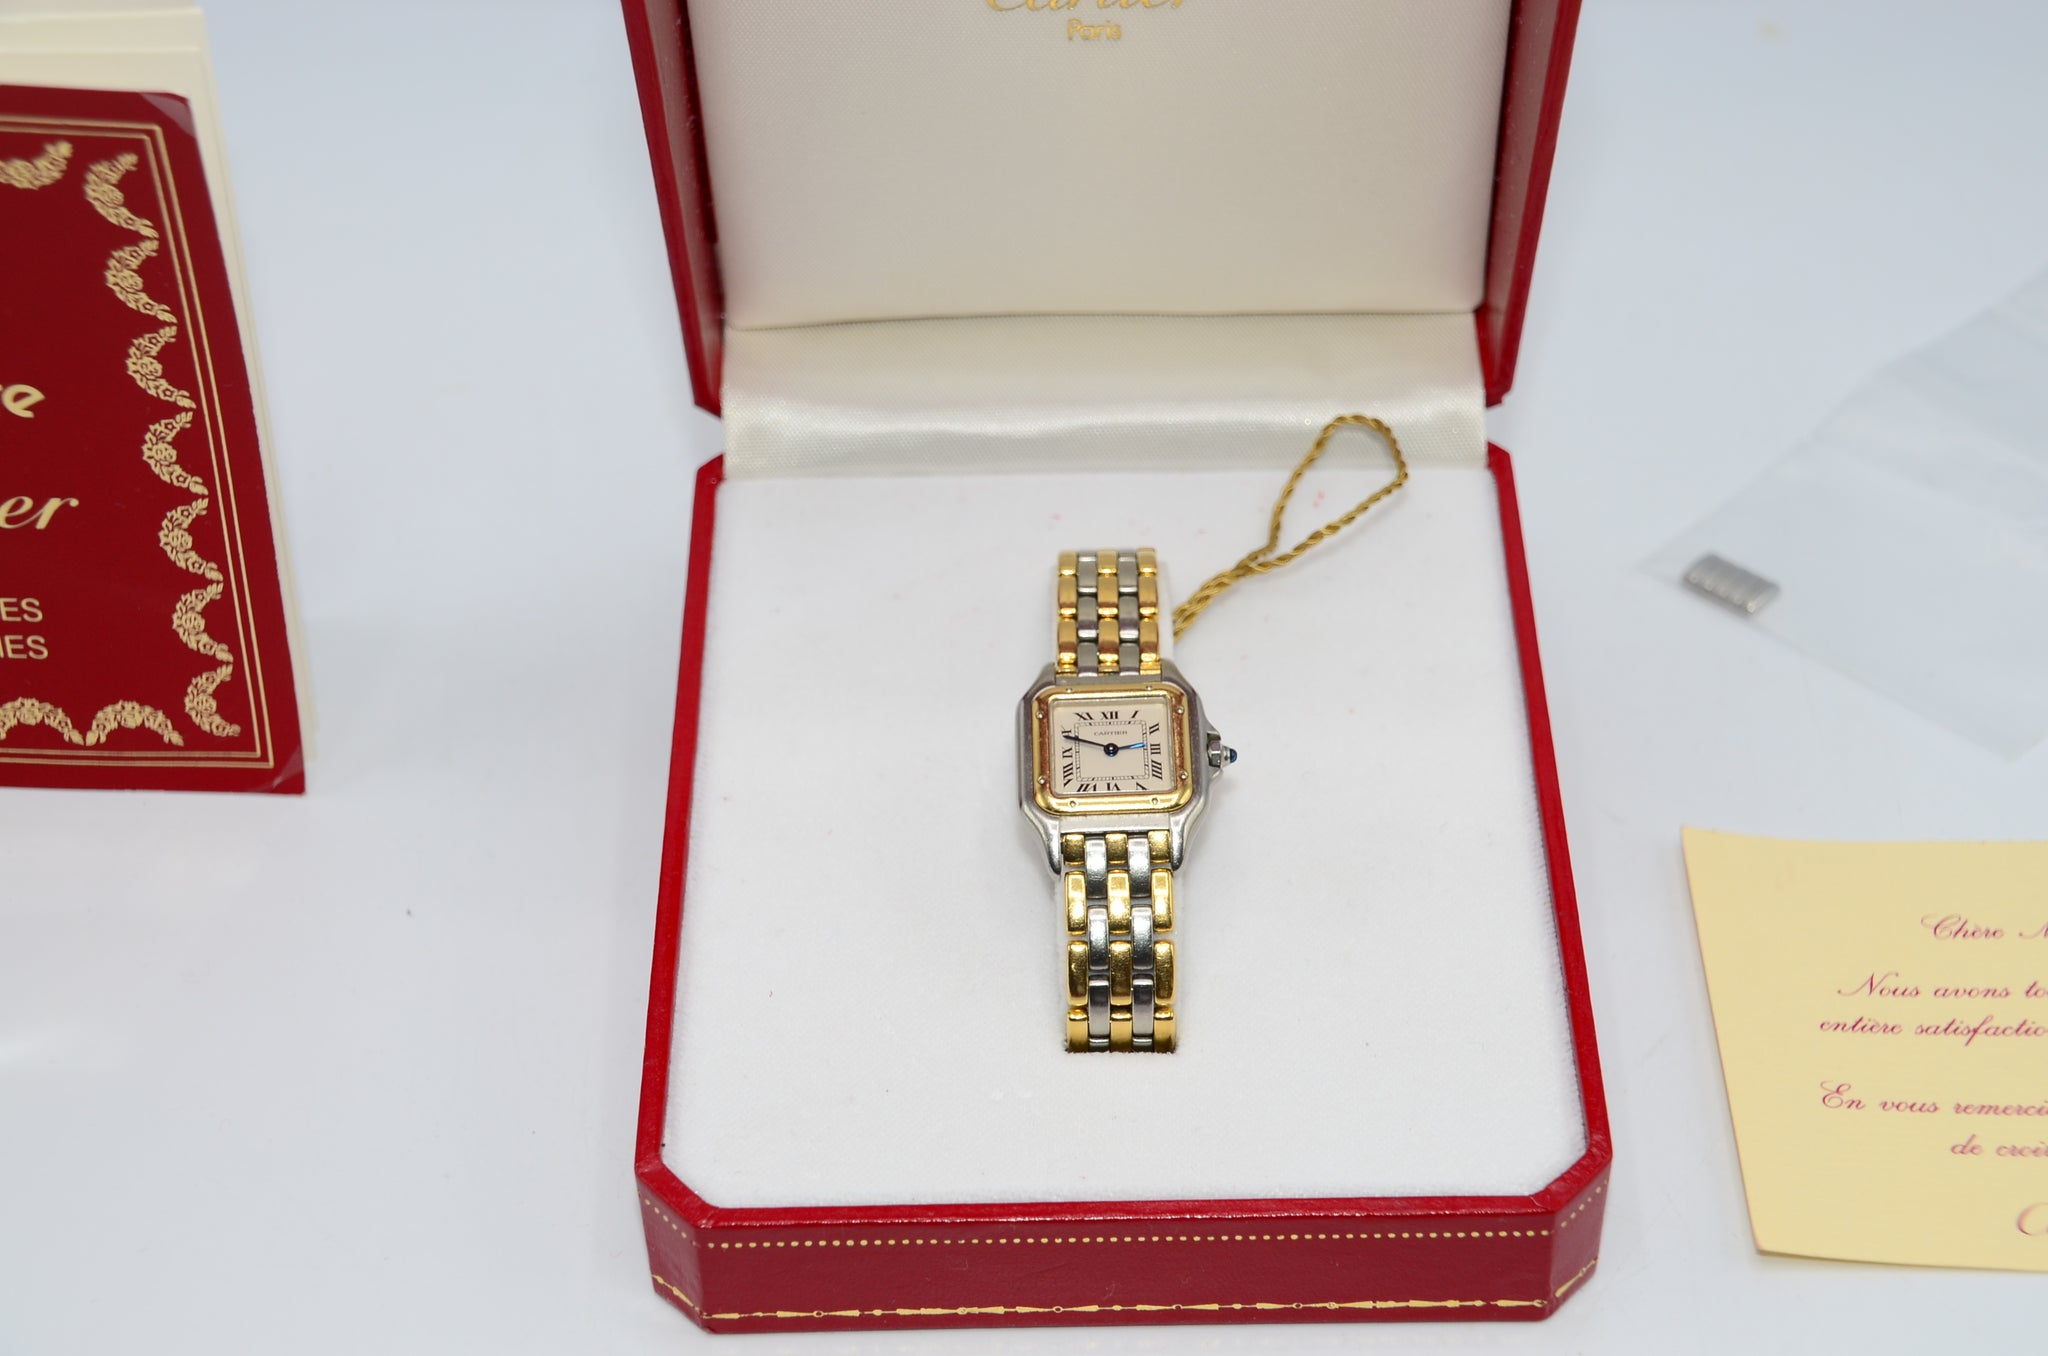 Cartier Panthère 3 Row watch - Iconics Preloved Luxury